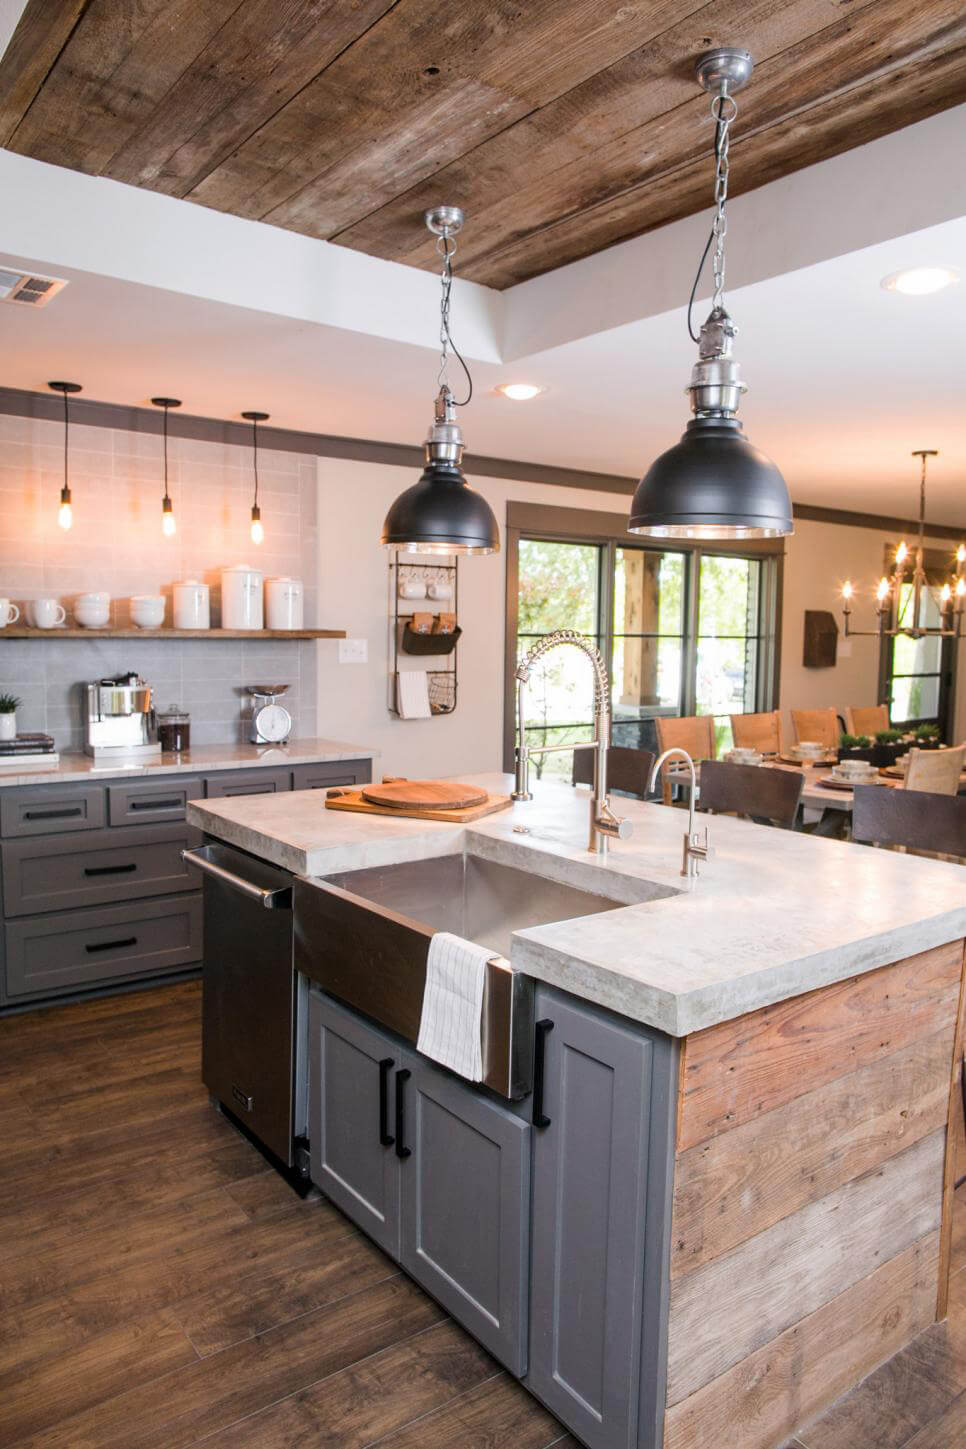 Which Type of Farmhouse Style is Your Favorite?